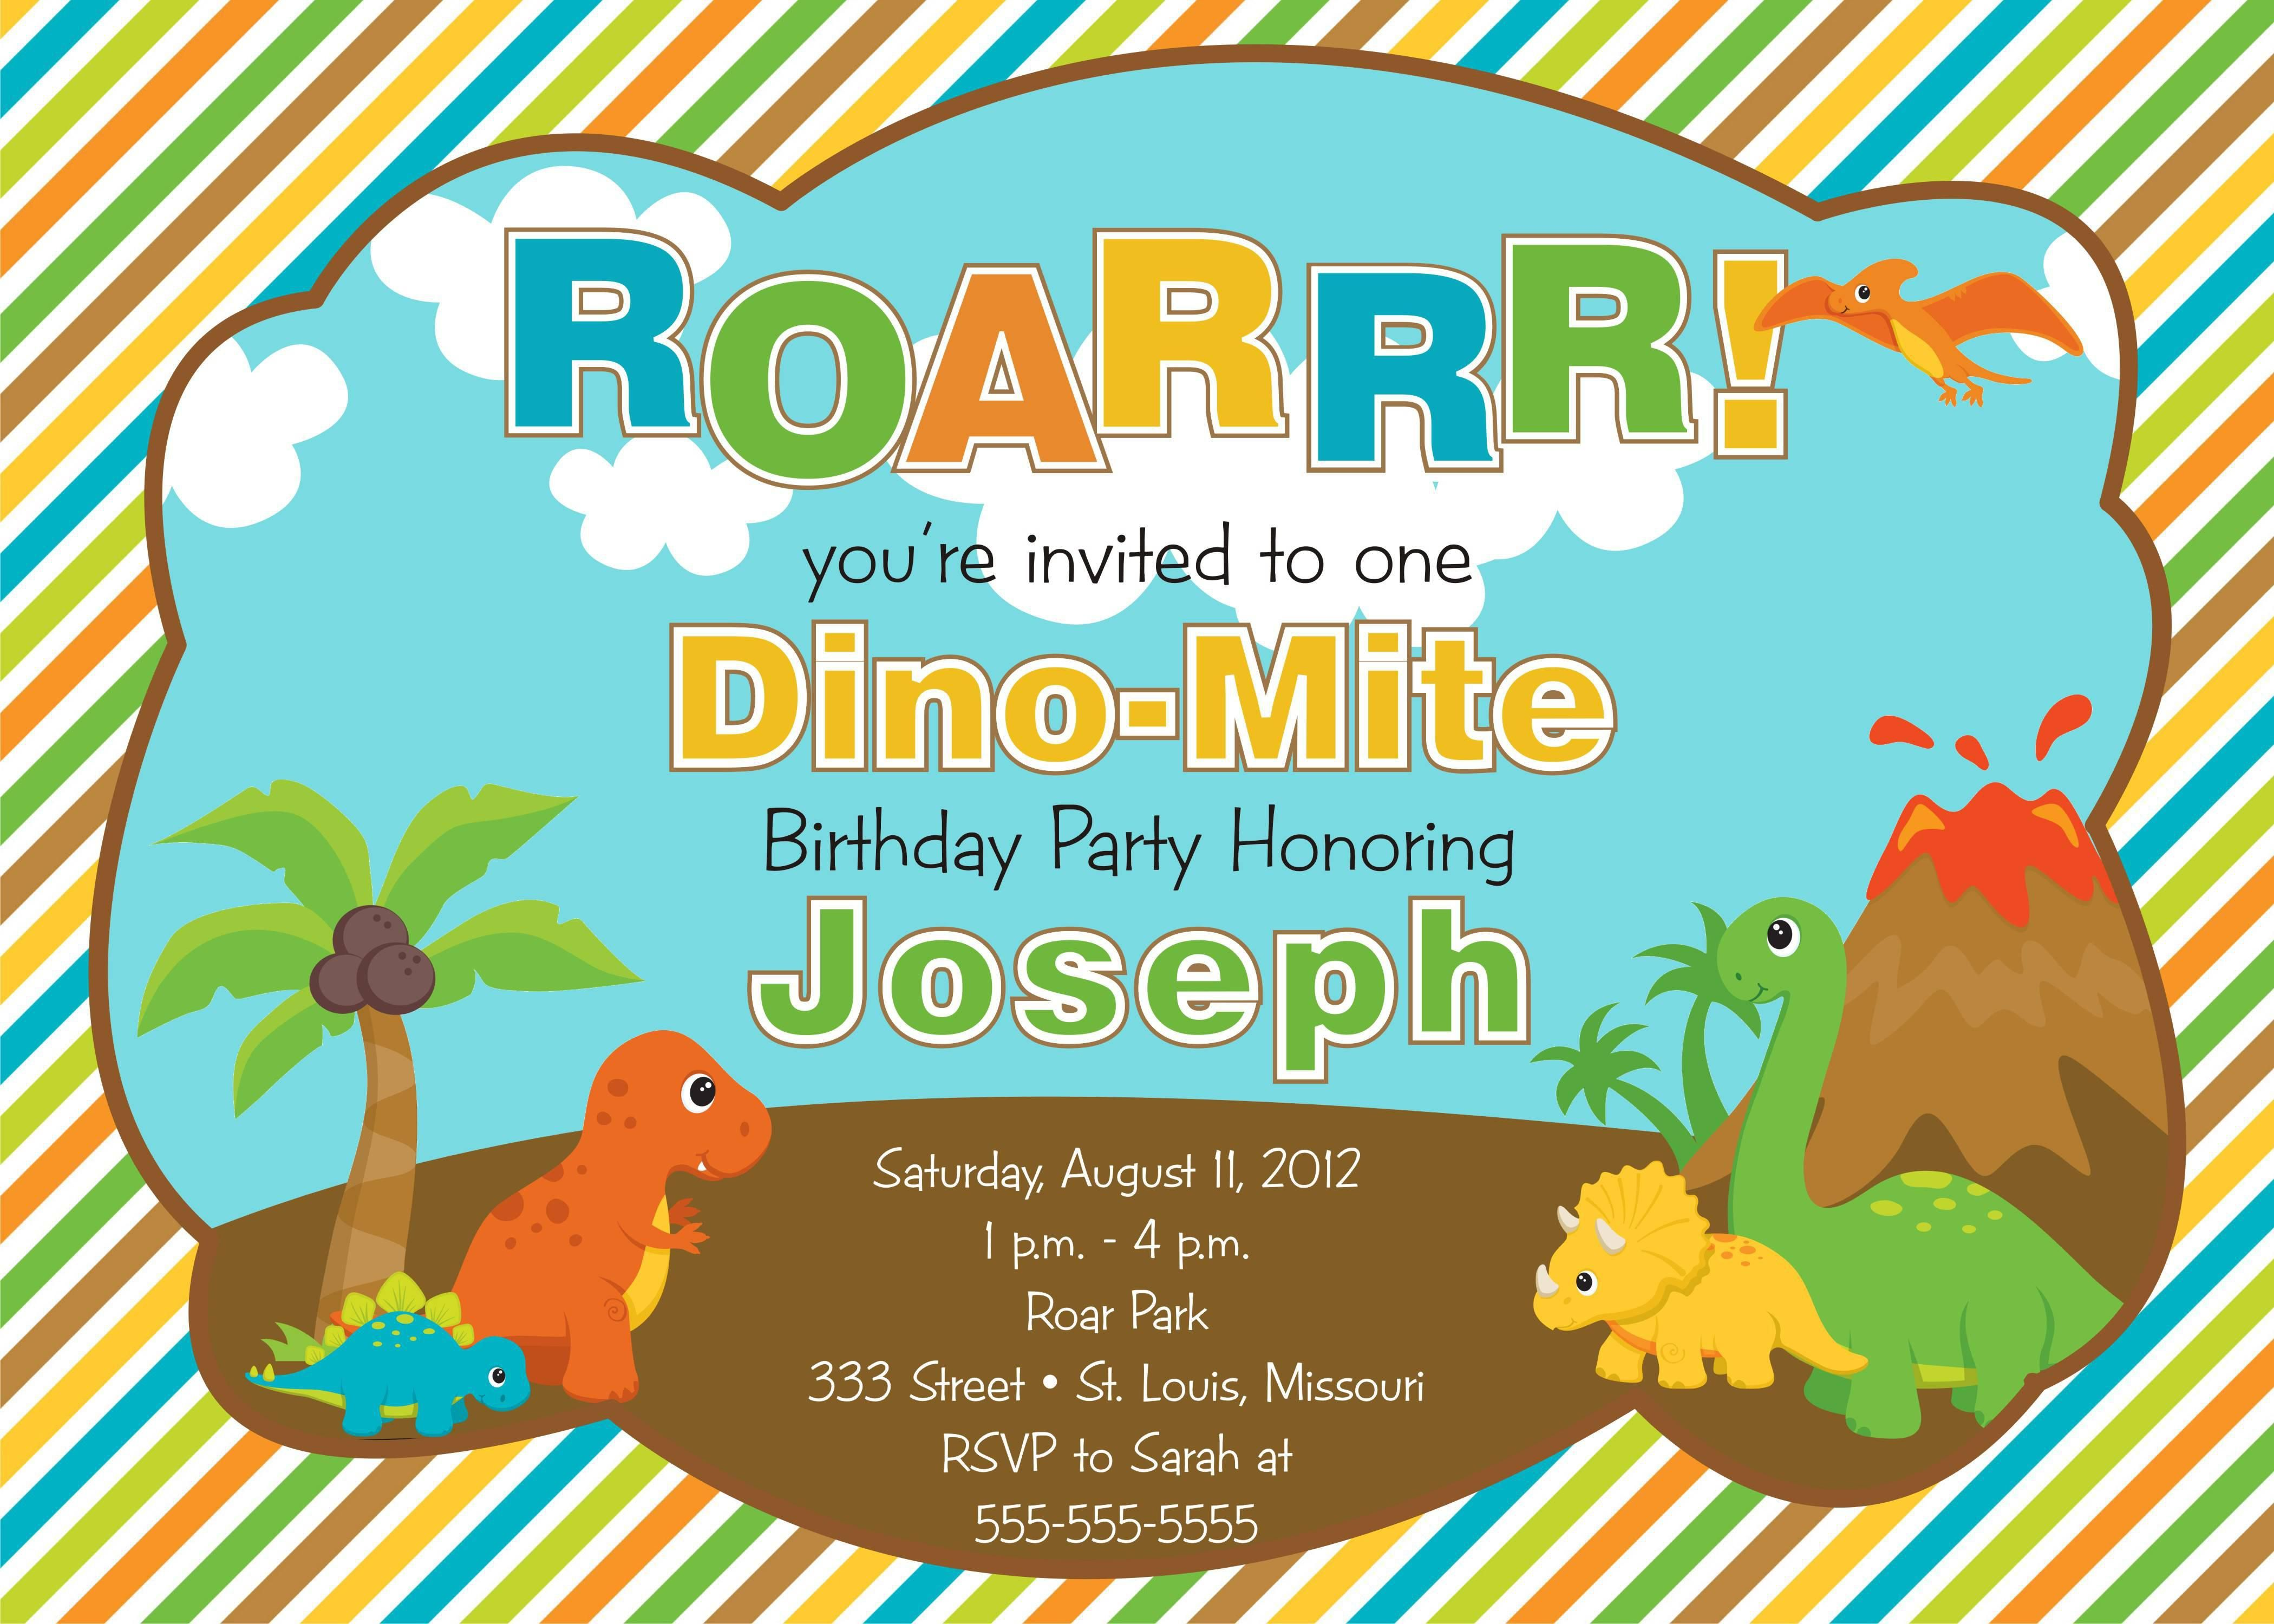 Dinosaur Birthday Party Invitations Kids Card Templates